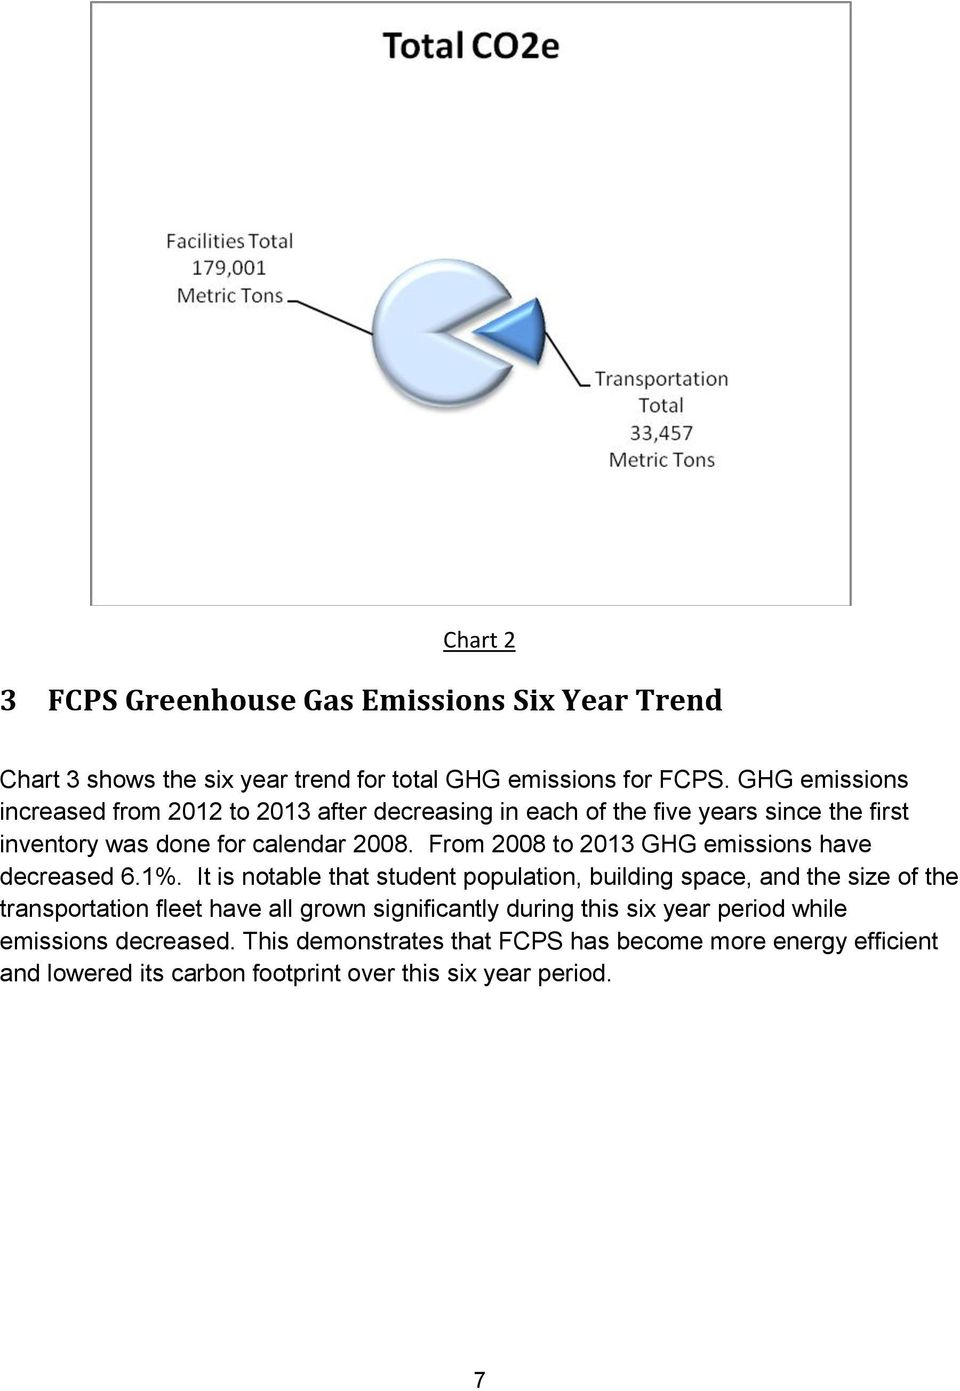 From 2008 to 2013 GHG emissions have decreased 6.1%.